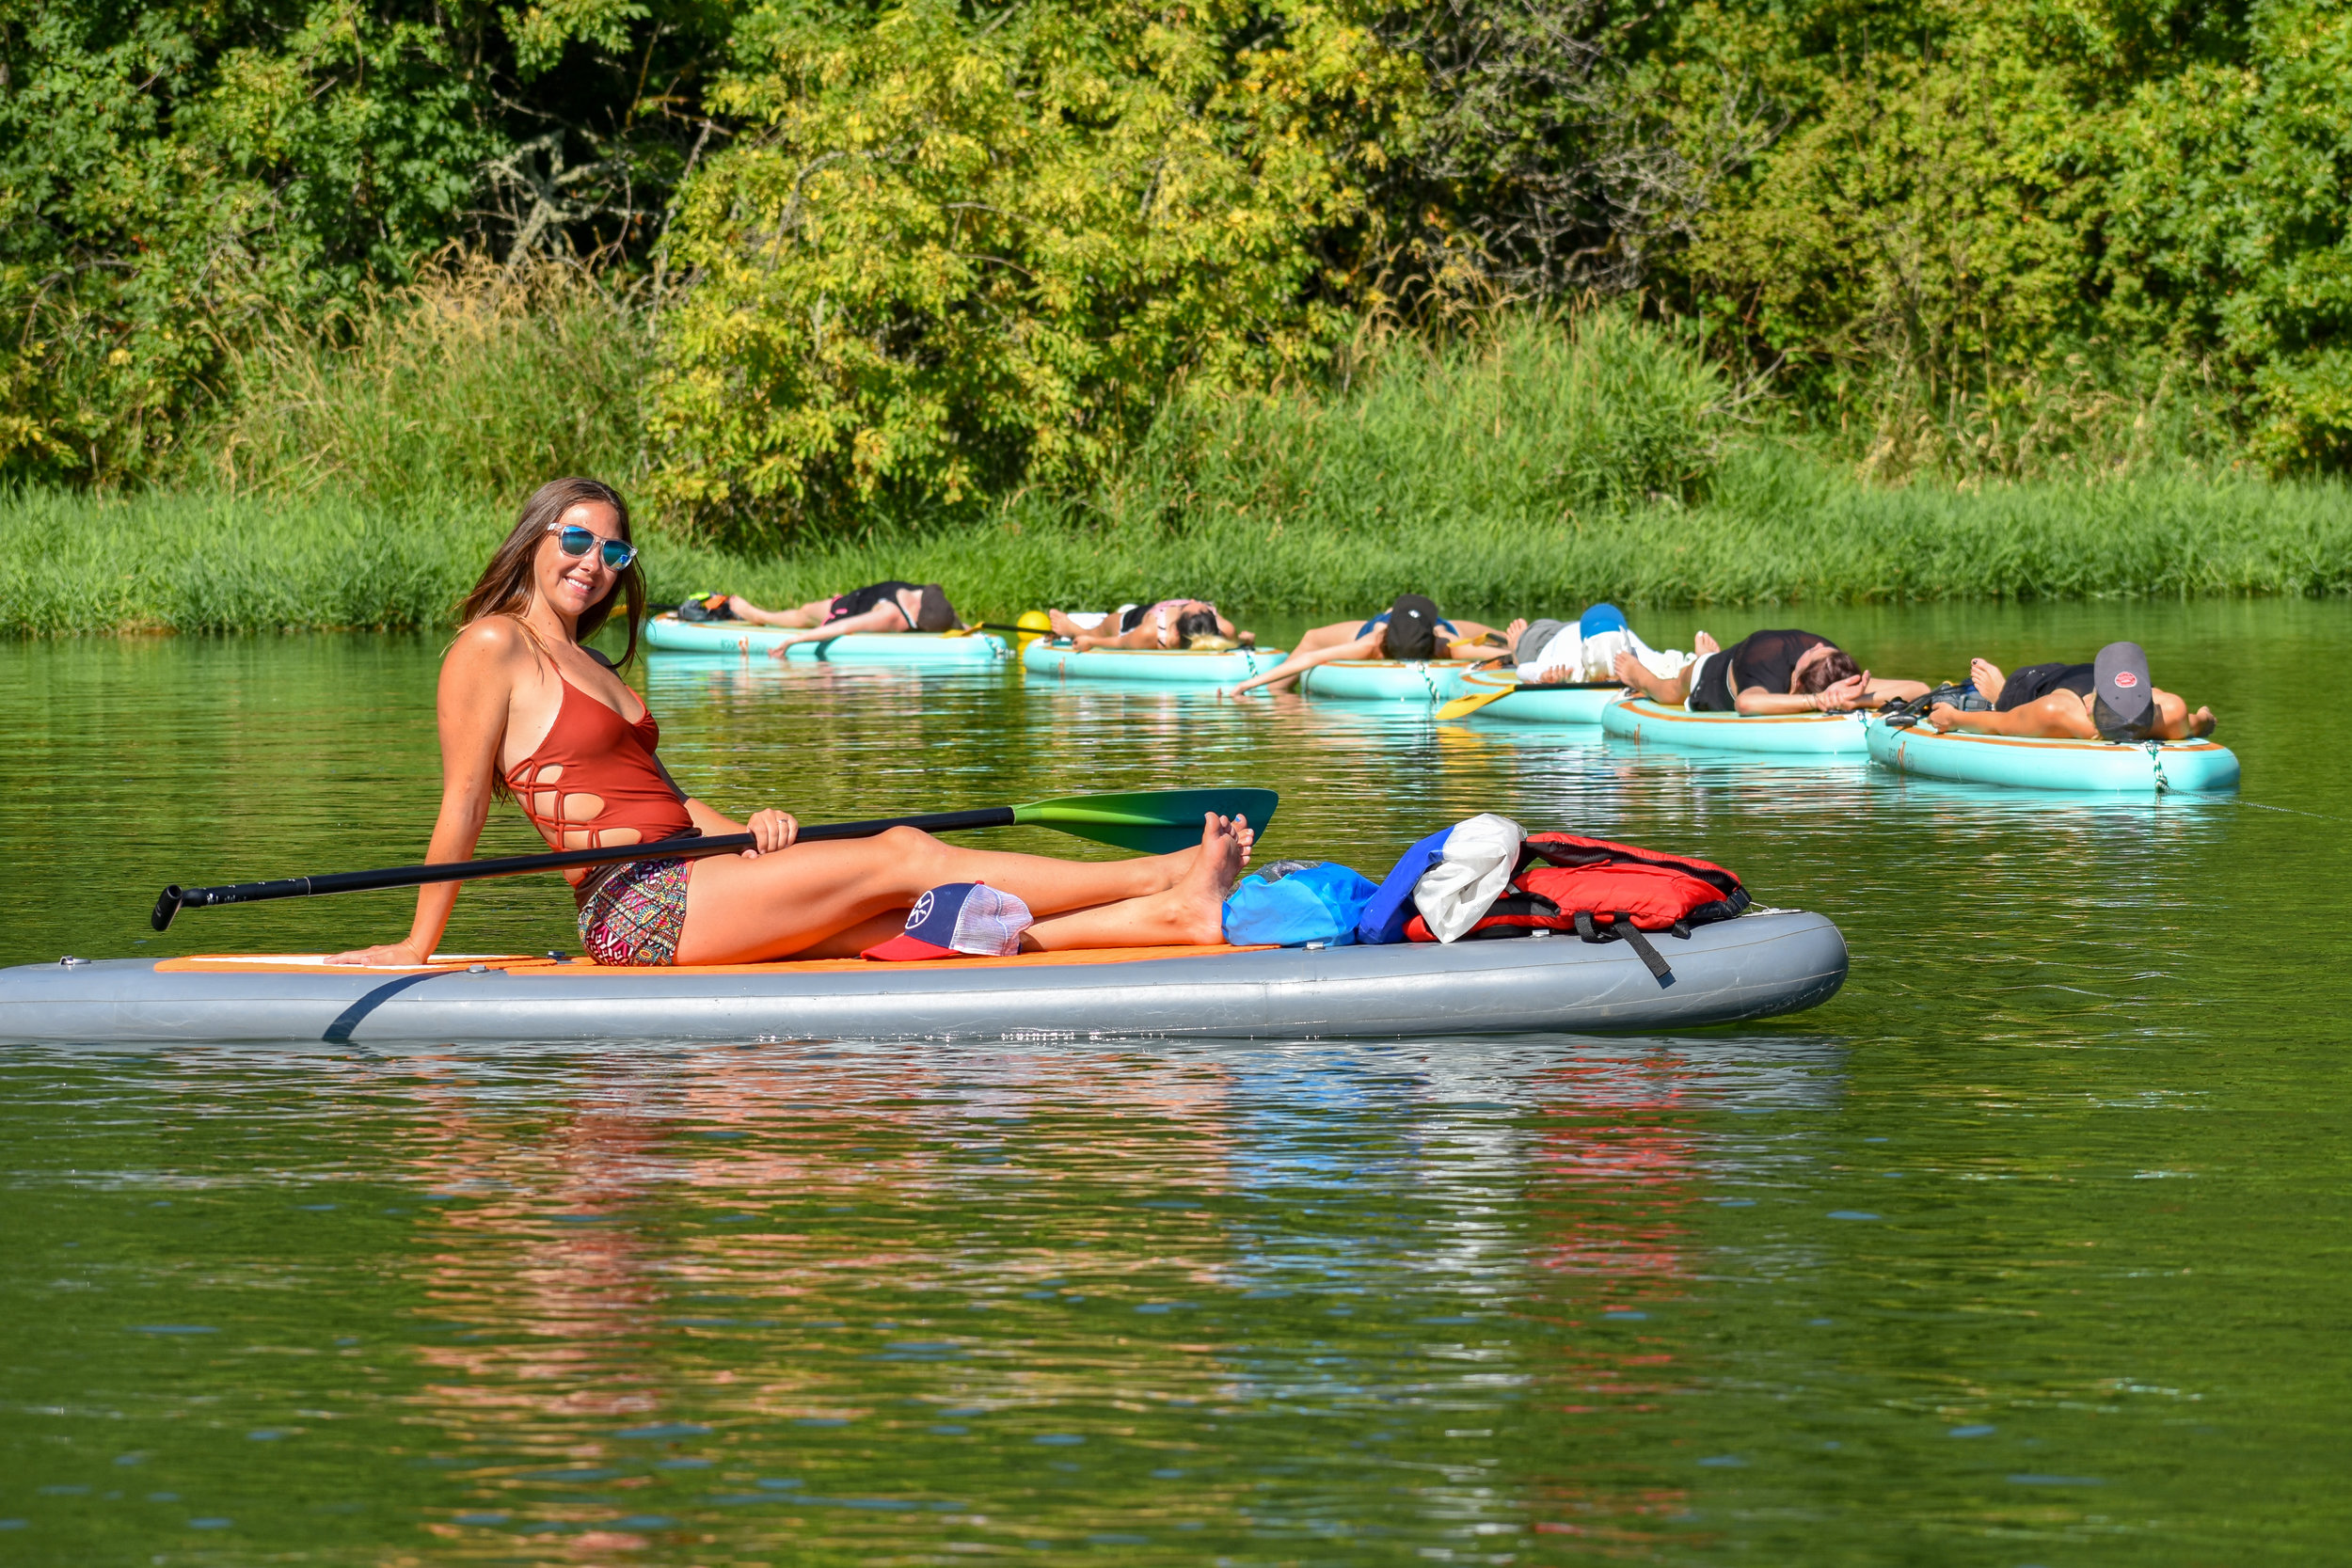 The Pump & Grind of SUP Yoga - Read our recent blog and gain a behind-the-scenes glimpse at teaching yoga on water!